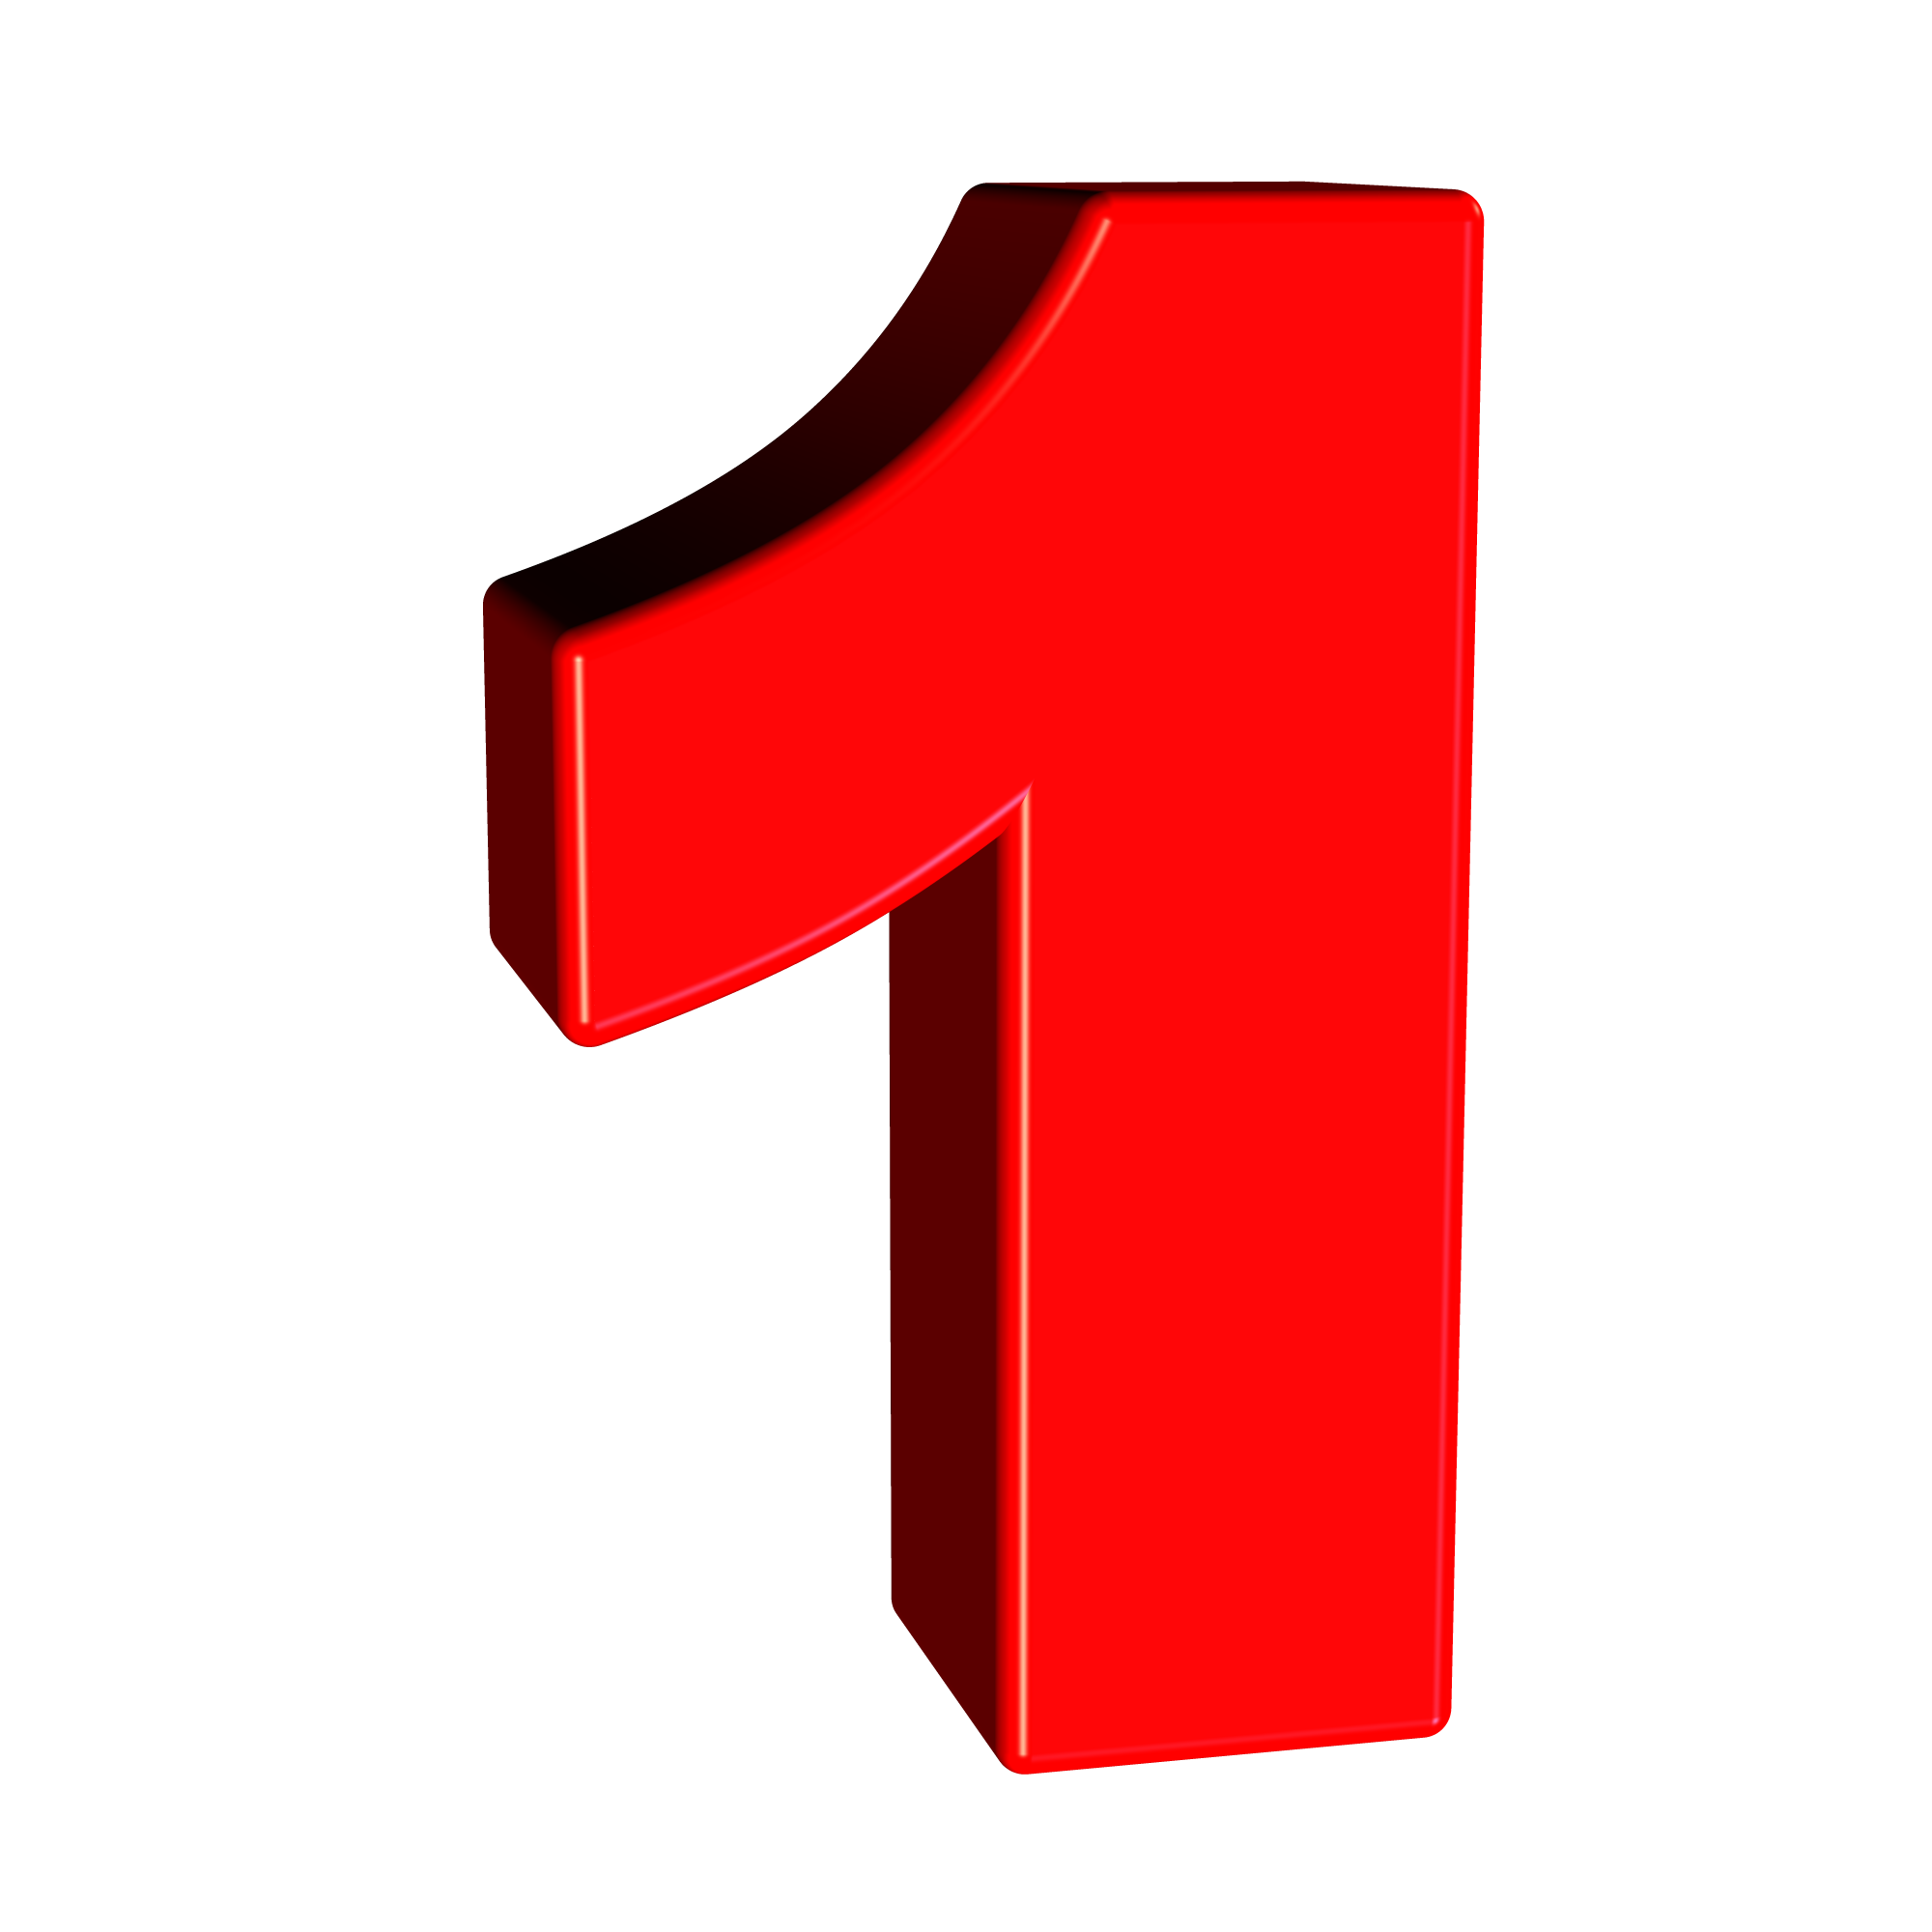 Red free stock photo. Number 1 png image png free library